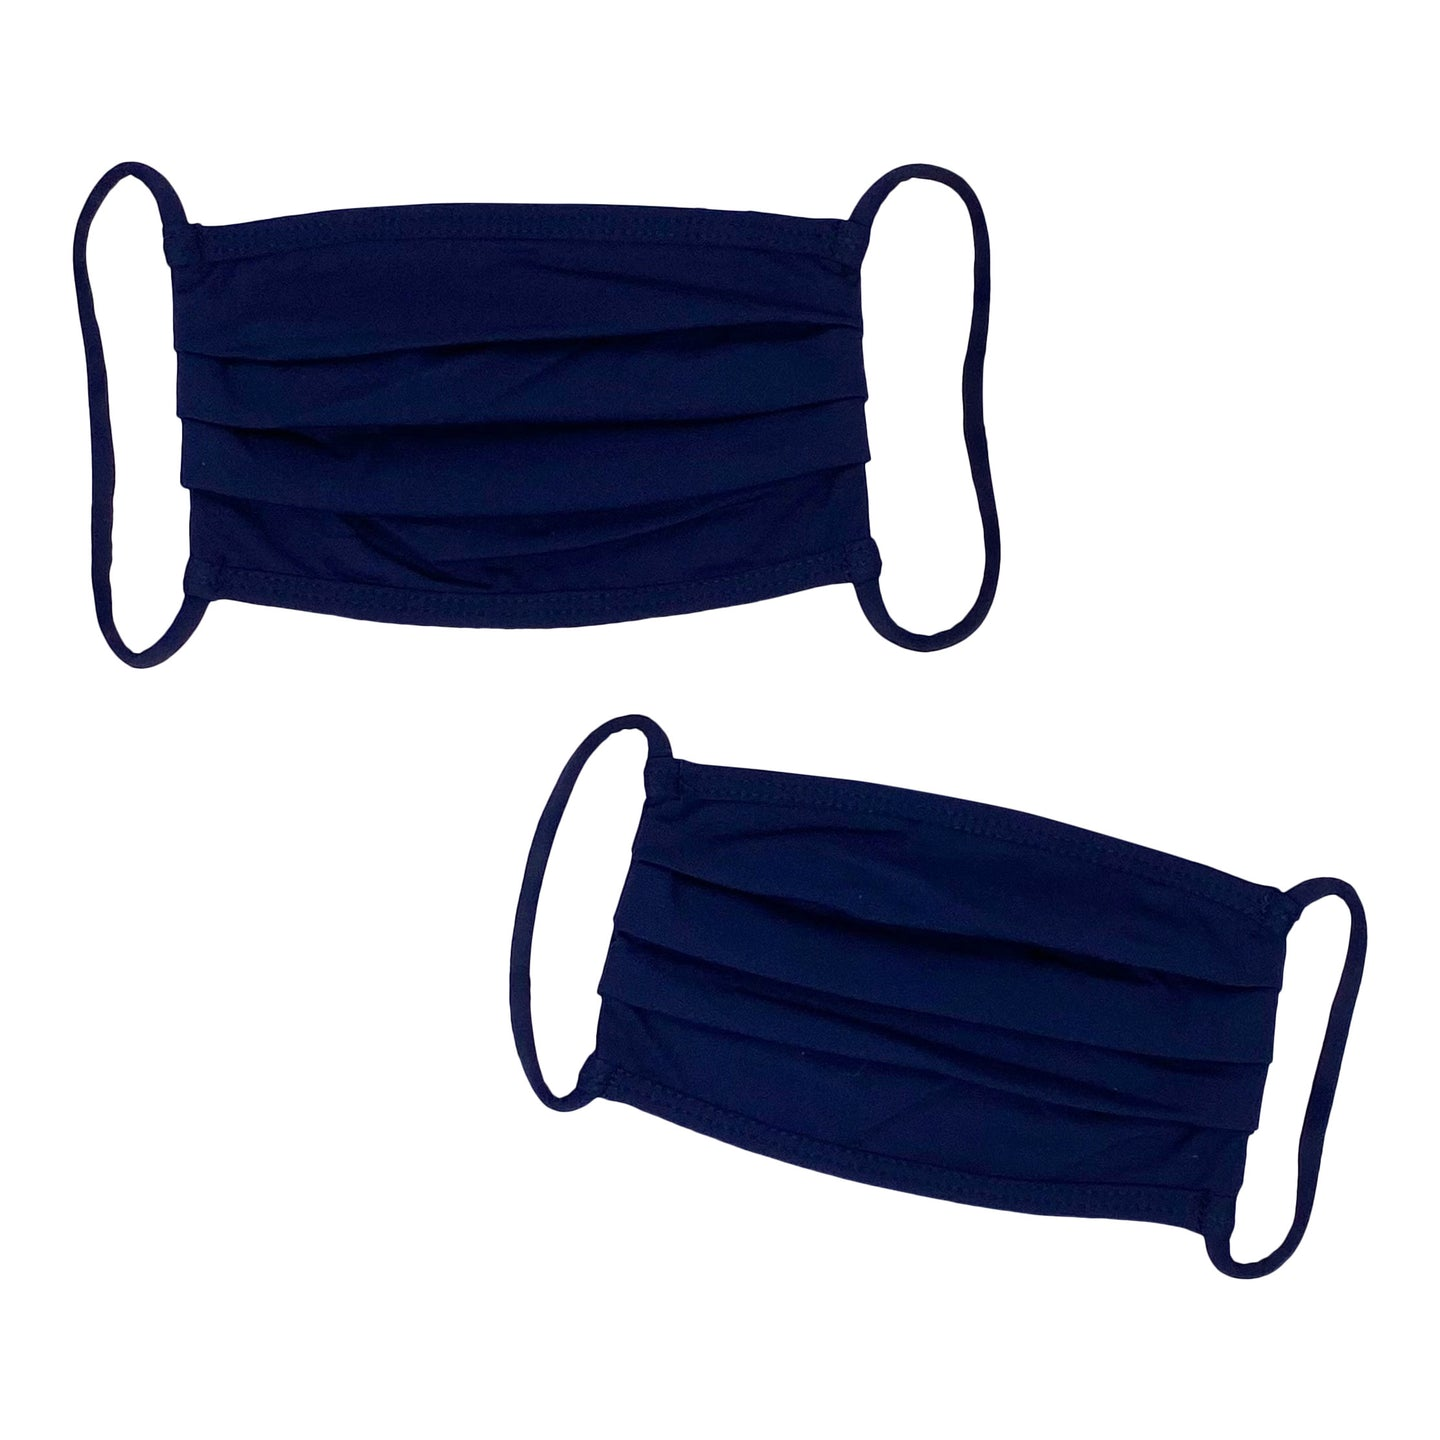 Mask SET in Navy (Mommy and Me)